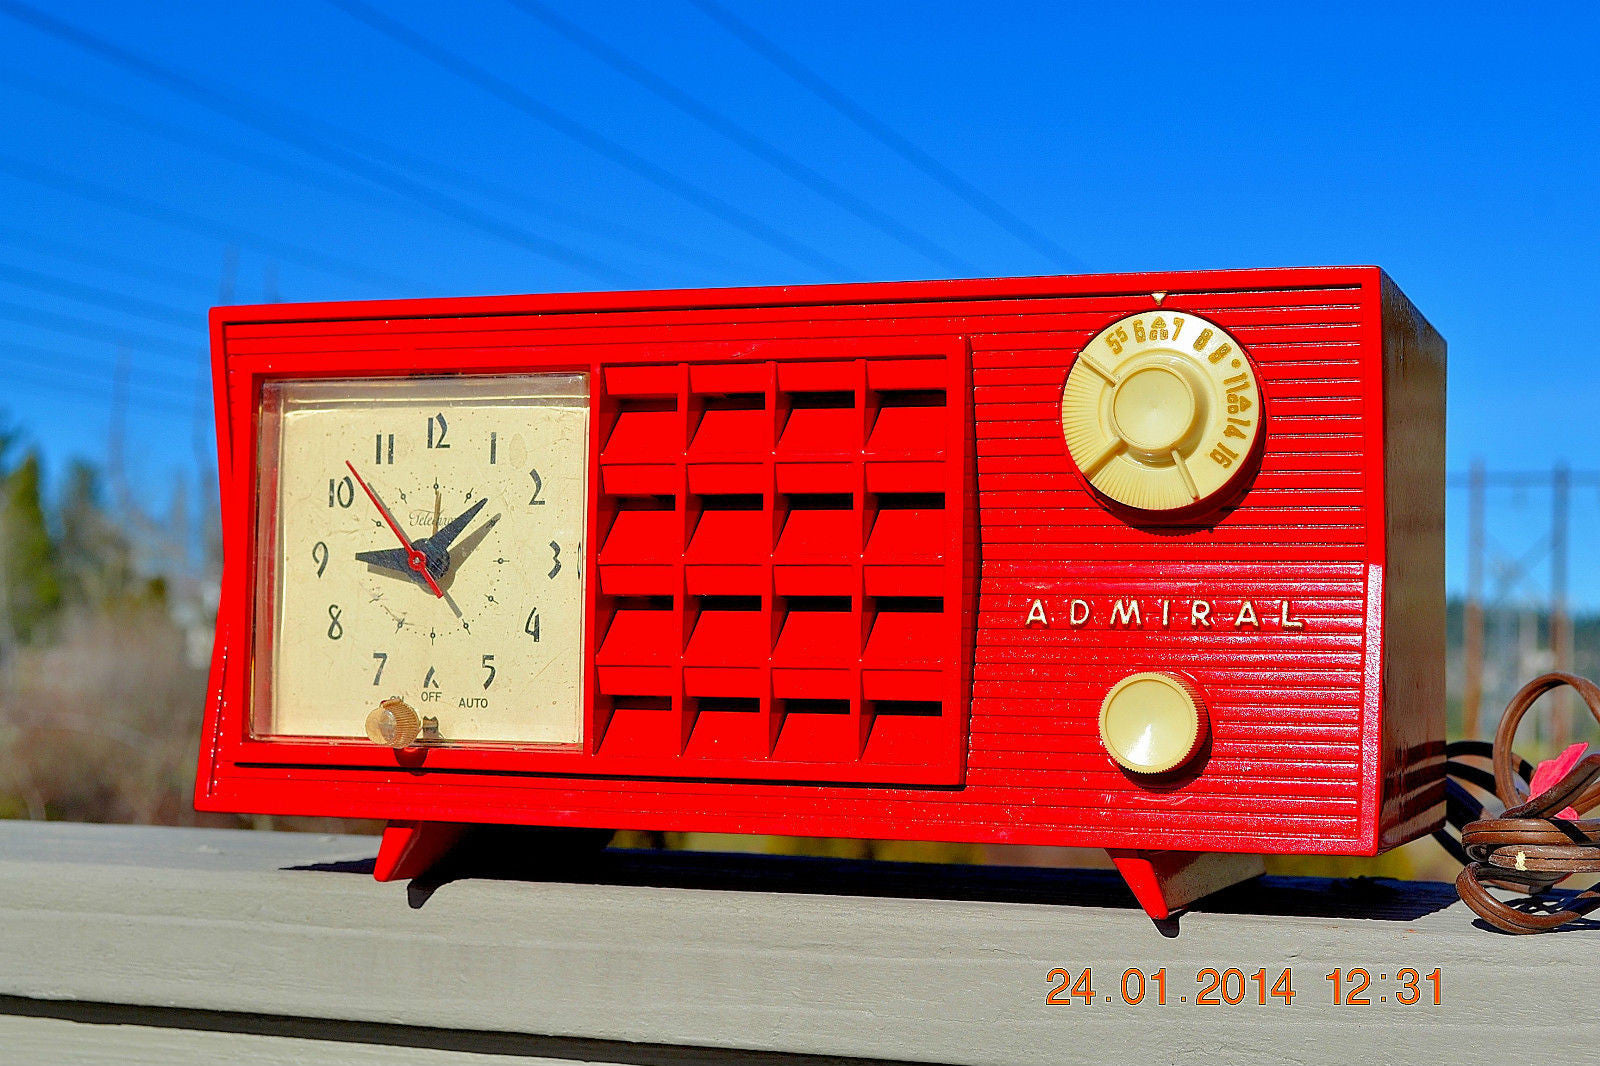 SOLD! - June 17, 2014 - LIPSTICK RED Vintage Atomic Age 1955 Admiral 5S38 Tube AM Radio Clock Alarm - [product_type} - Admiral - Retro Radio Farm